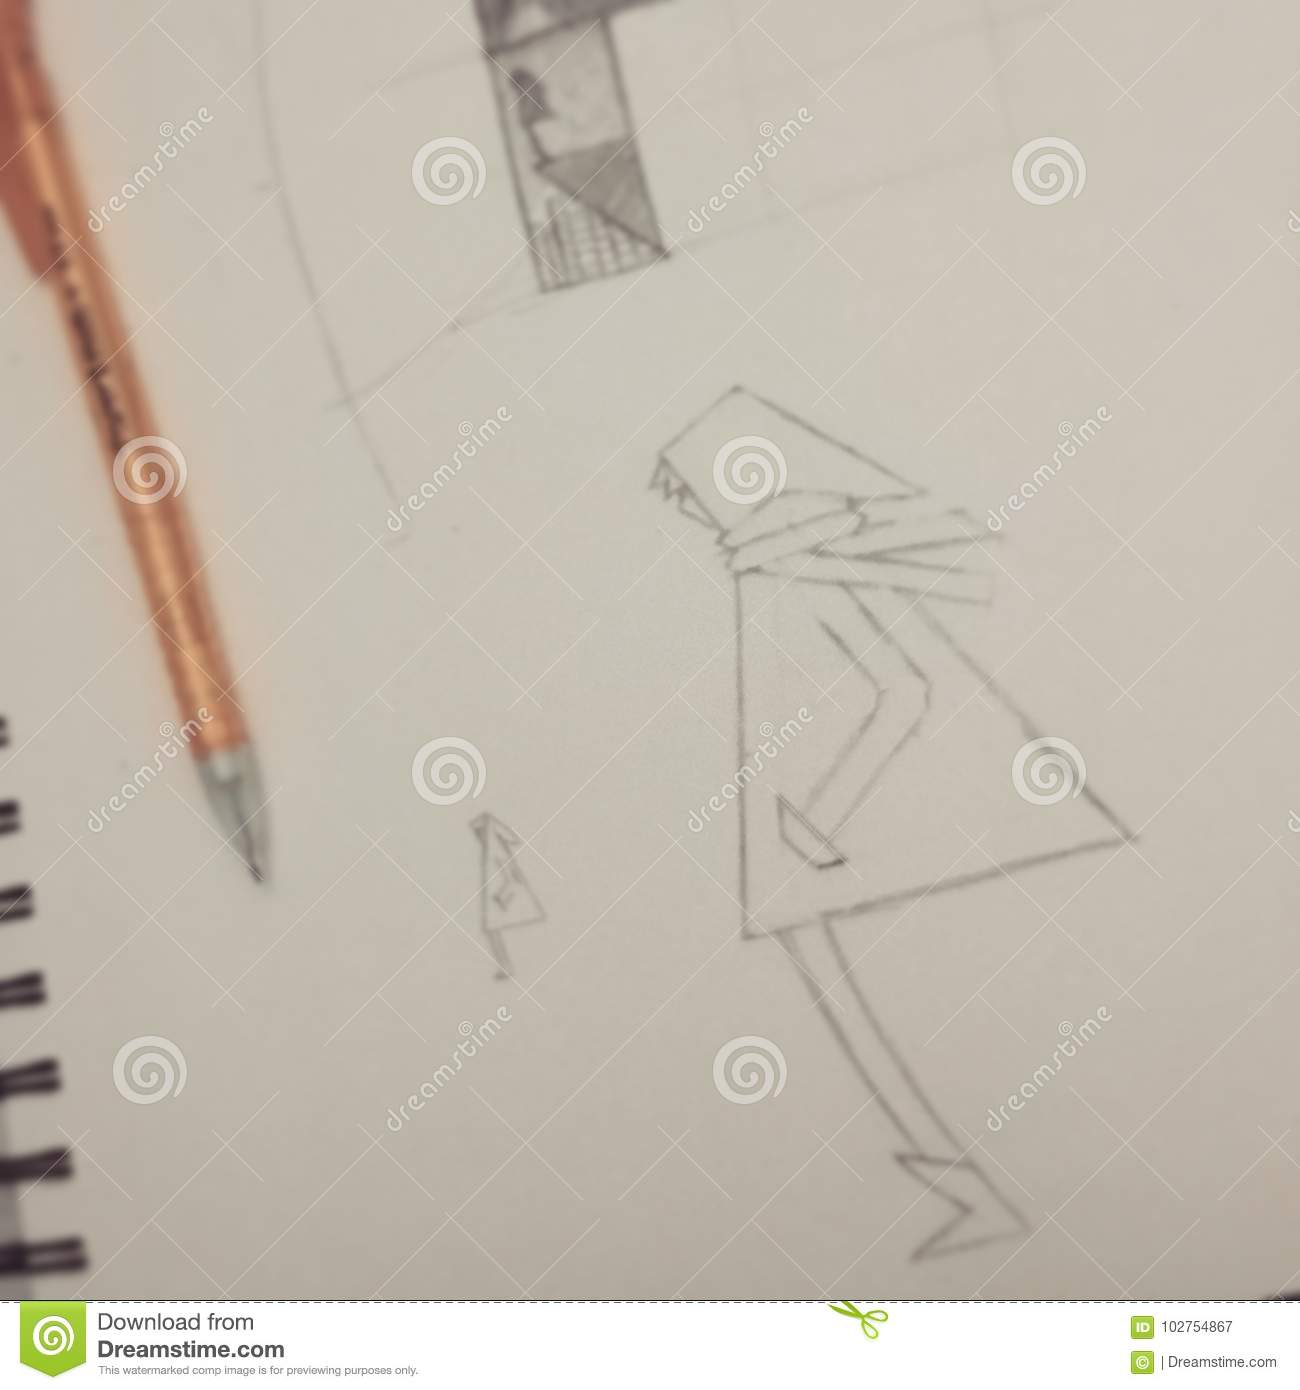 An abstract drawing of a lonely boy in a sketchbook with a mechanical pencil